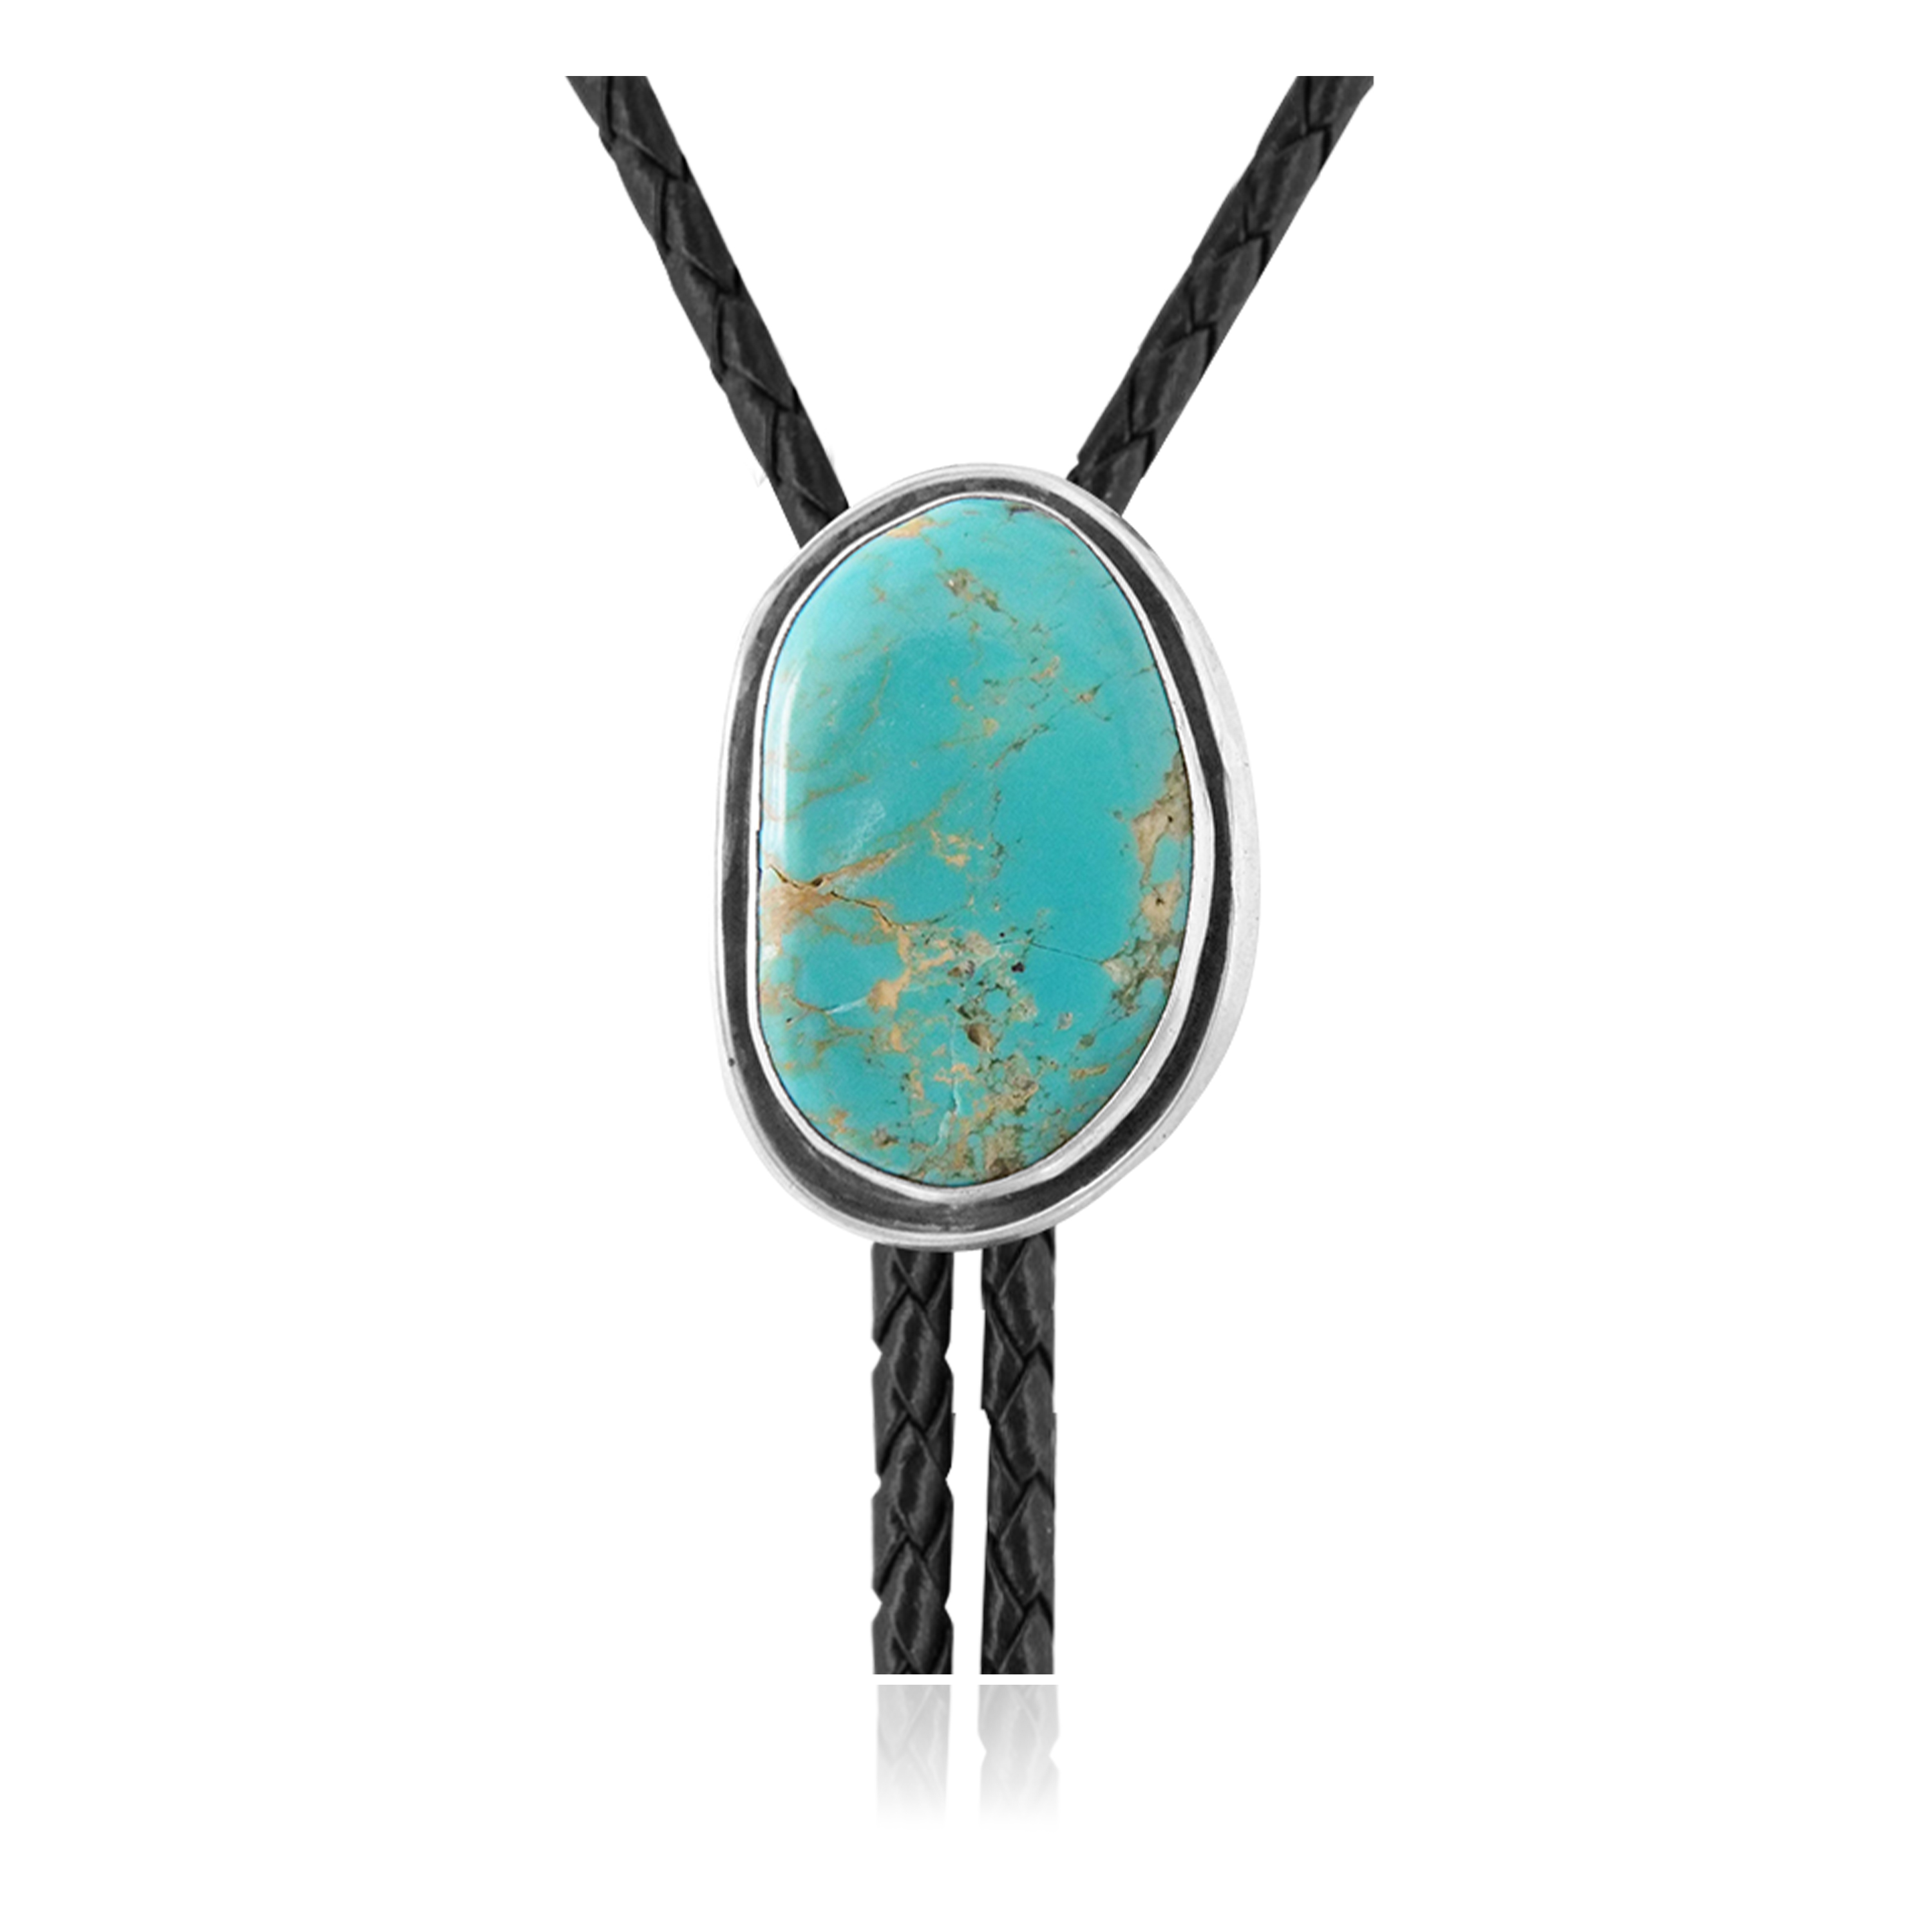 Handmade Certified Authentic Navajo .925 Sterling Silver Native American Natural Turquoise Bolo Tie 34377